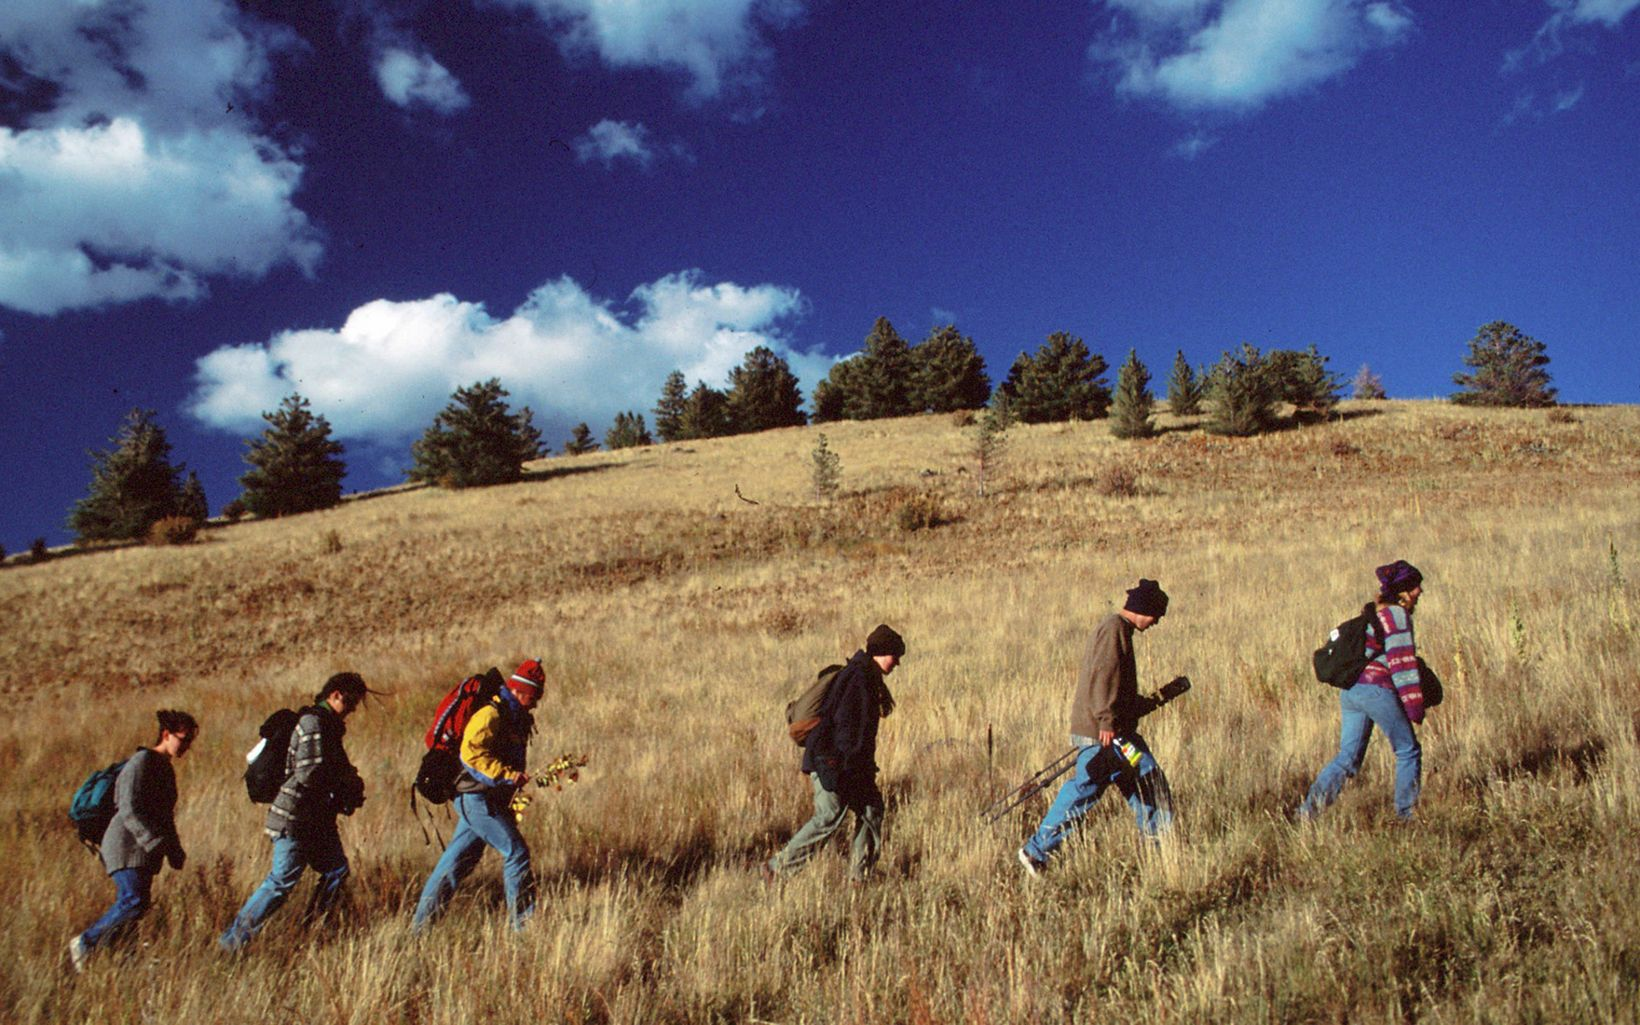 Five people hike up a grassy hillside carrying wildlife viewing equipment.